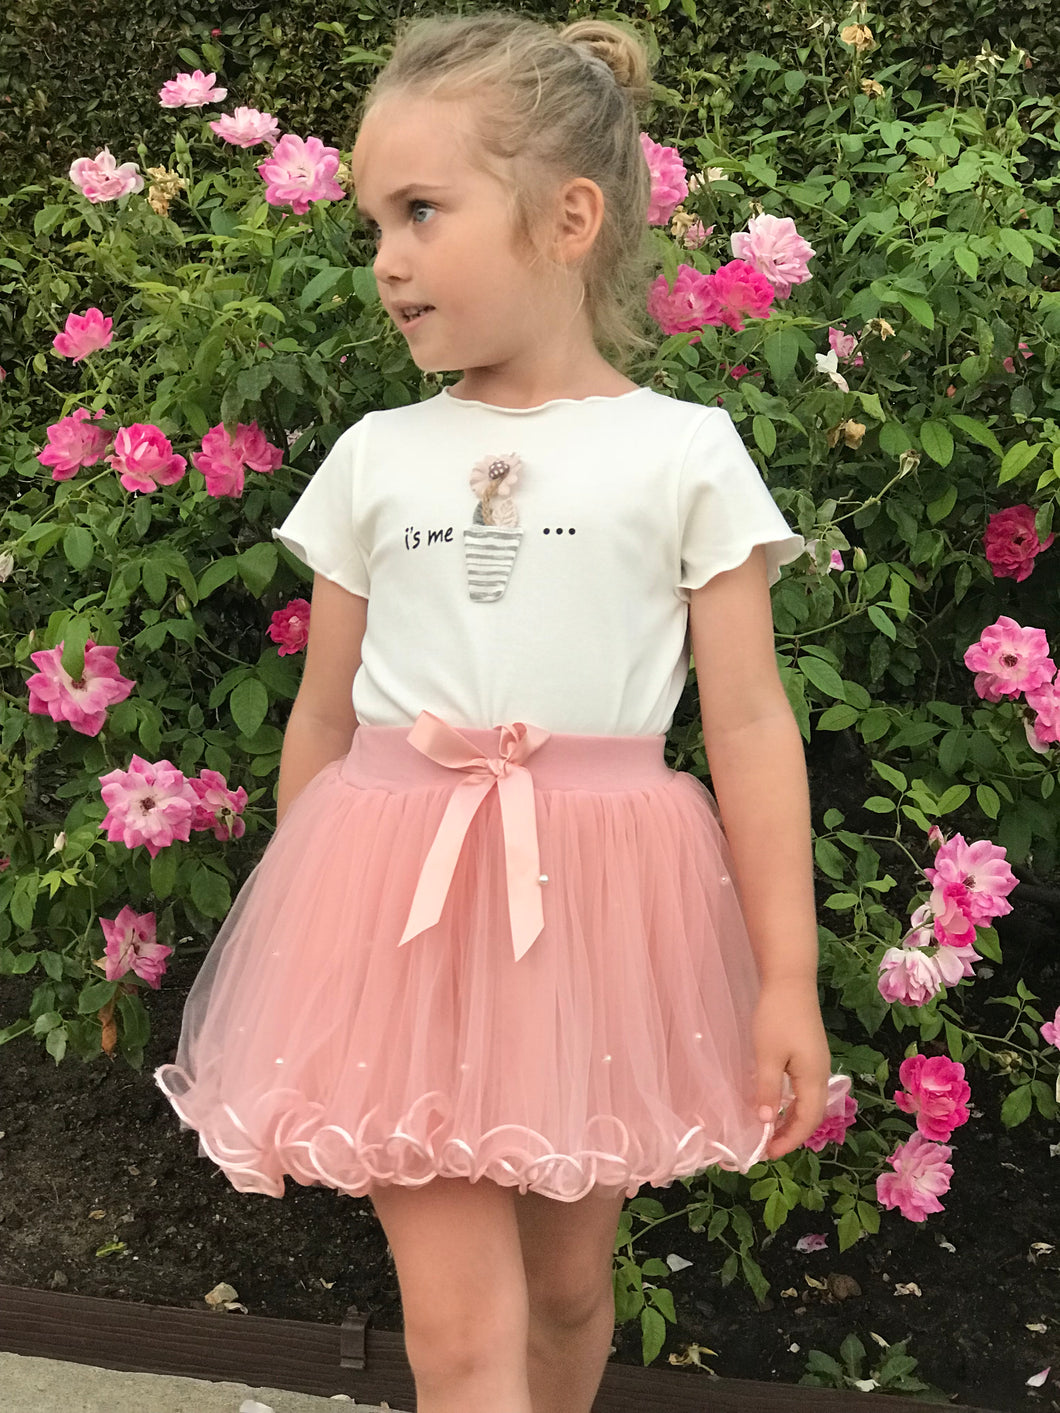 Flaricent Girls Tulle Tutu Pink Skirt with Pearls